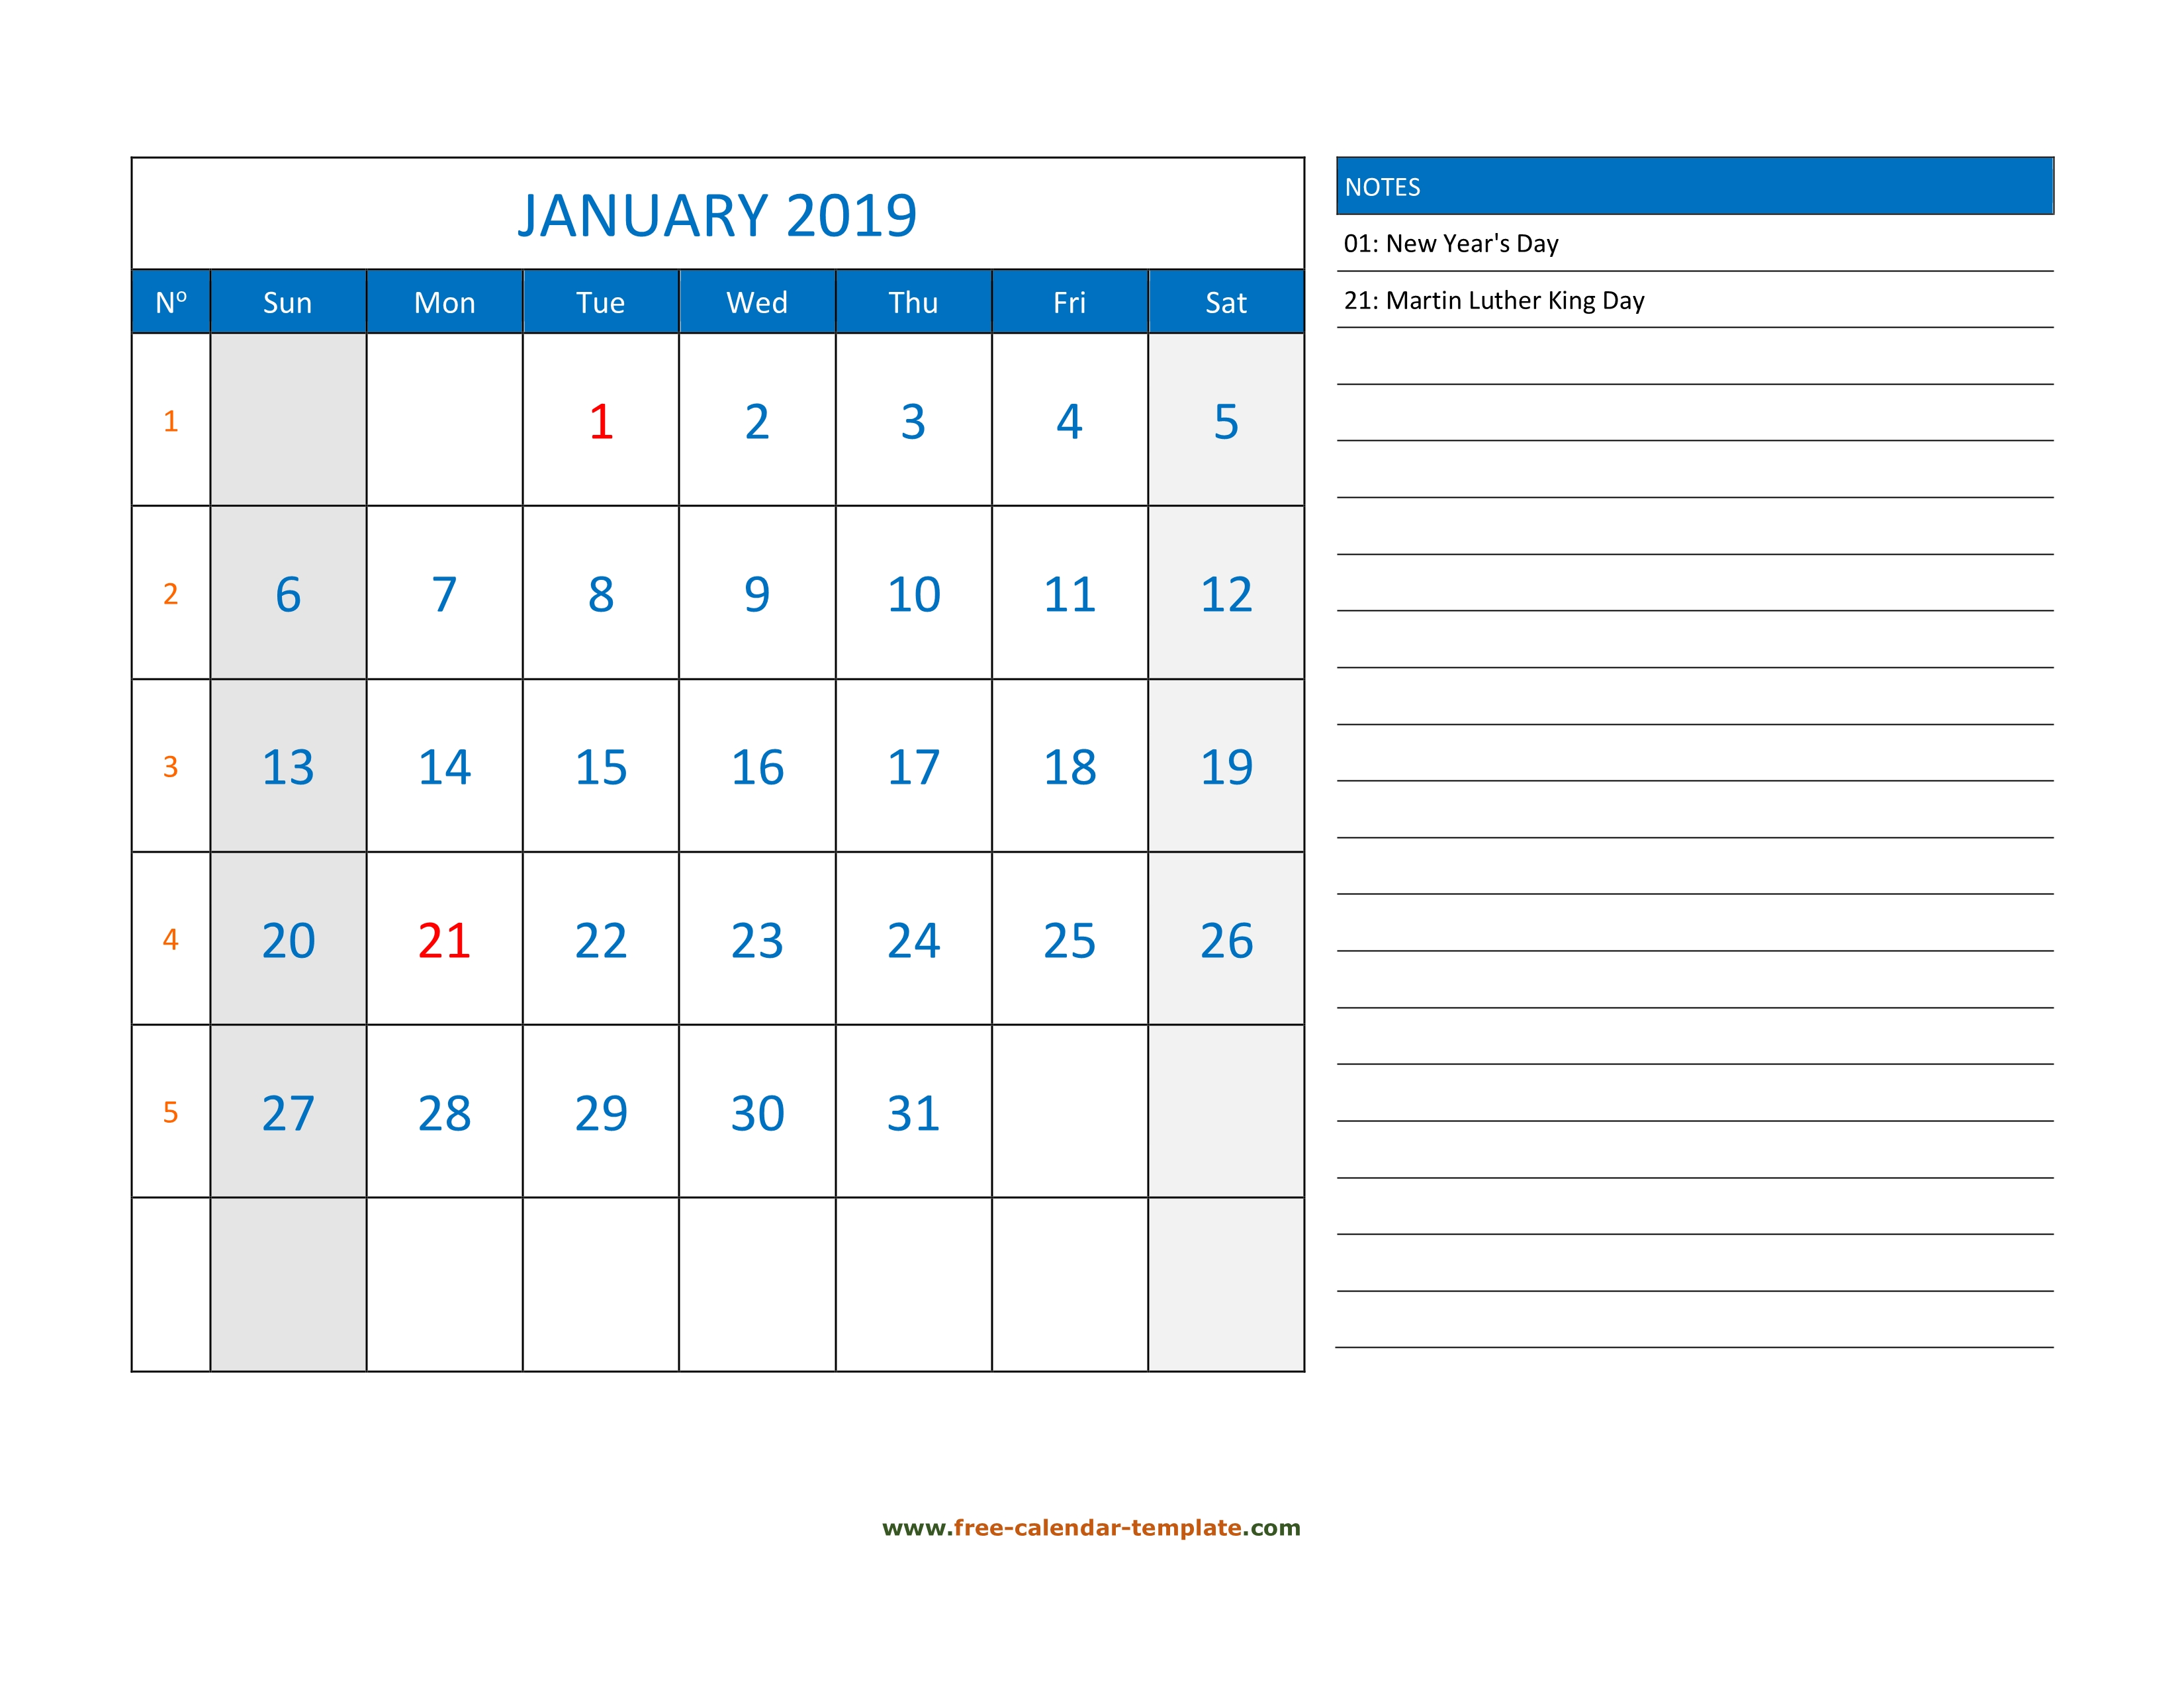 Monthly Calendar 2019 Grid Lines For Holidays And Notes Horizontal